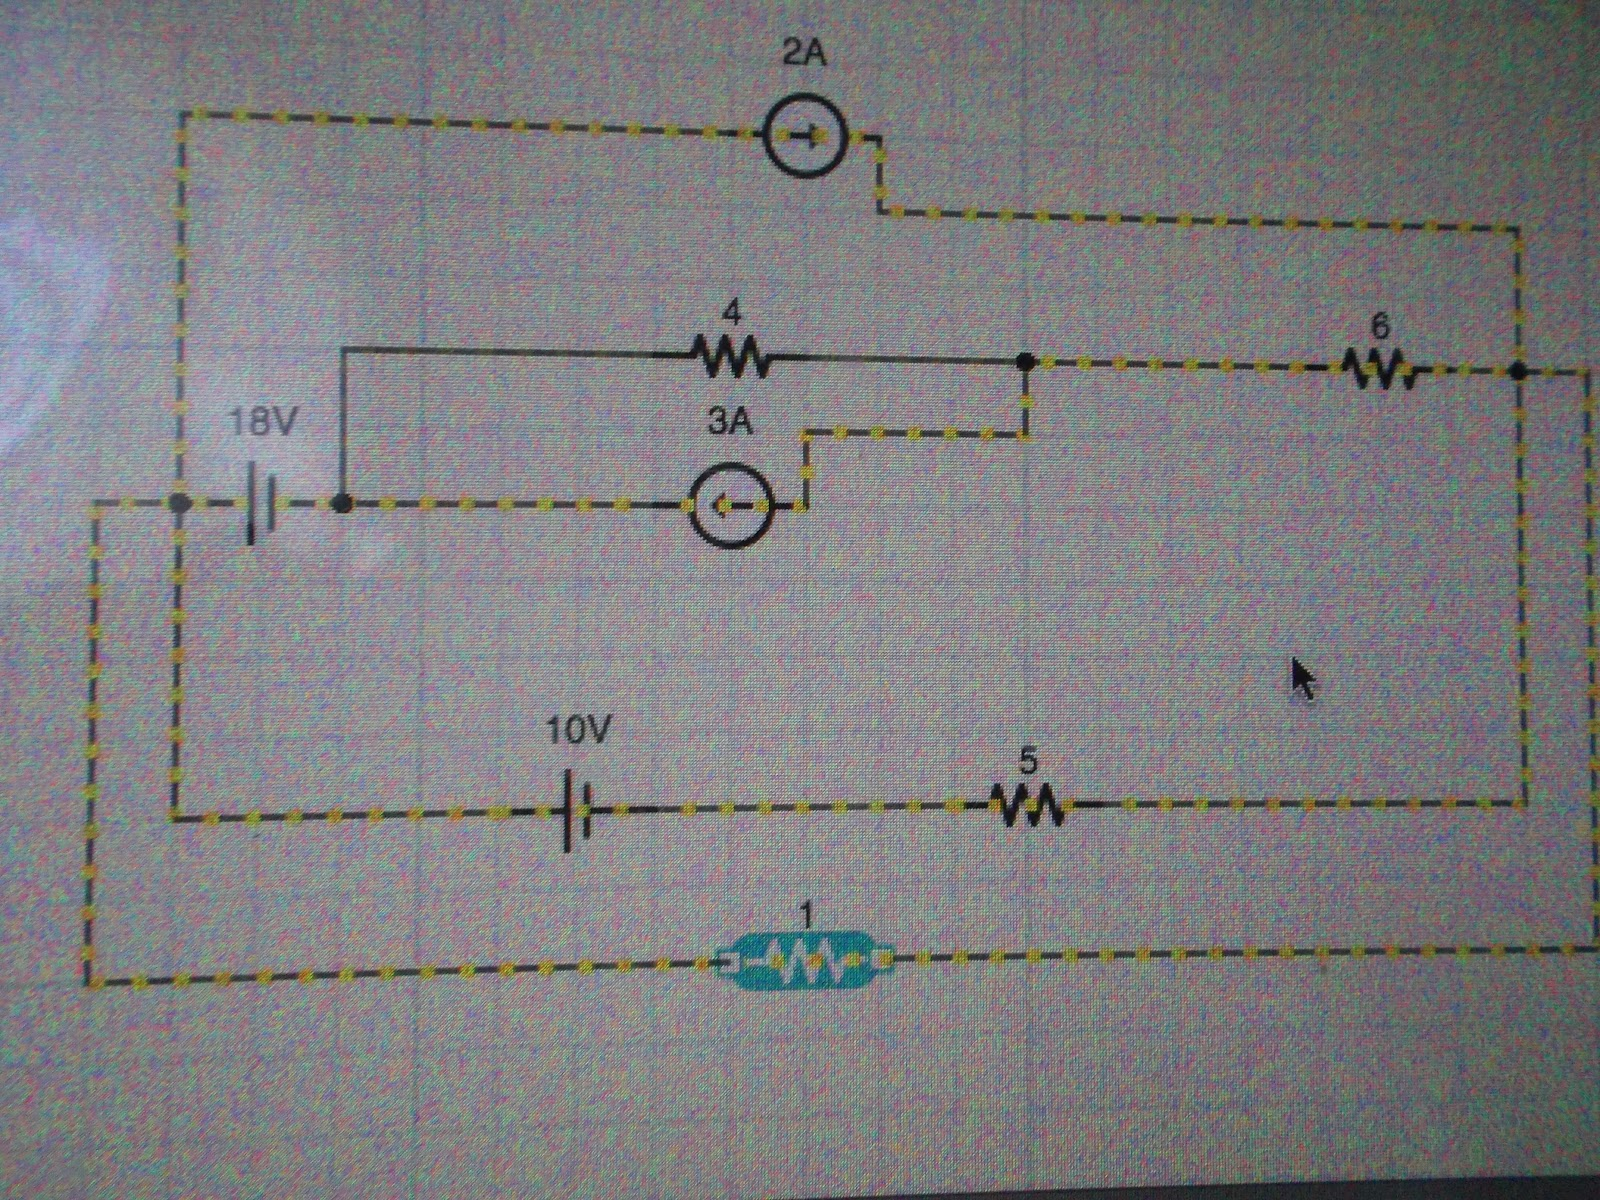 Dc And Ac Circuits Lab April 2013 Thevenin Voltage Numerical Example Norton Equivalent So This Concluded The Equivalents Portion Of Assignment Unfortunately Due To Time Constraints My Relative Lack Access